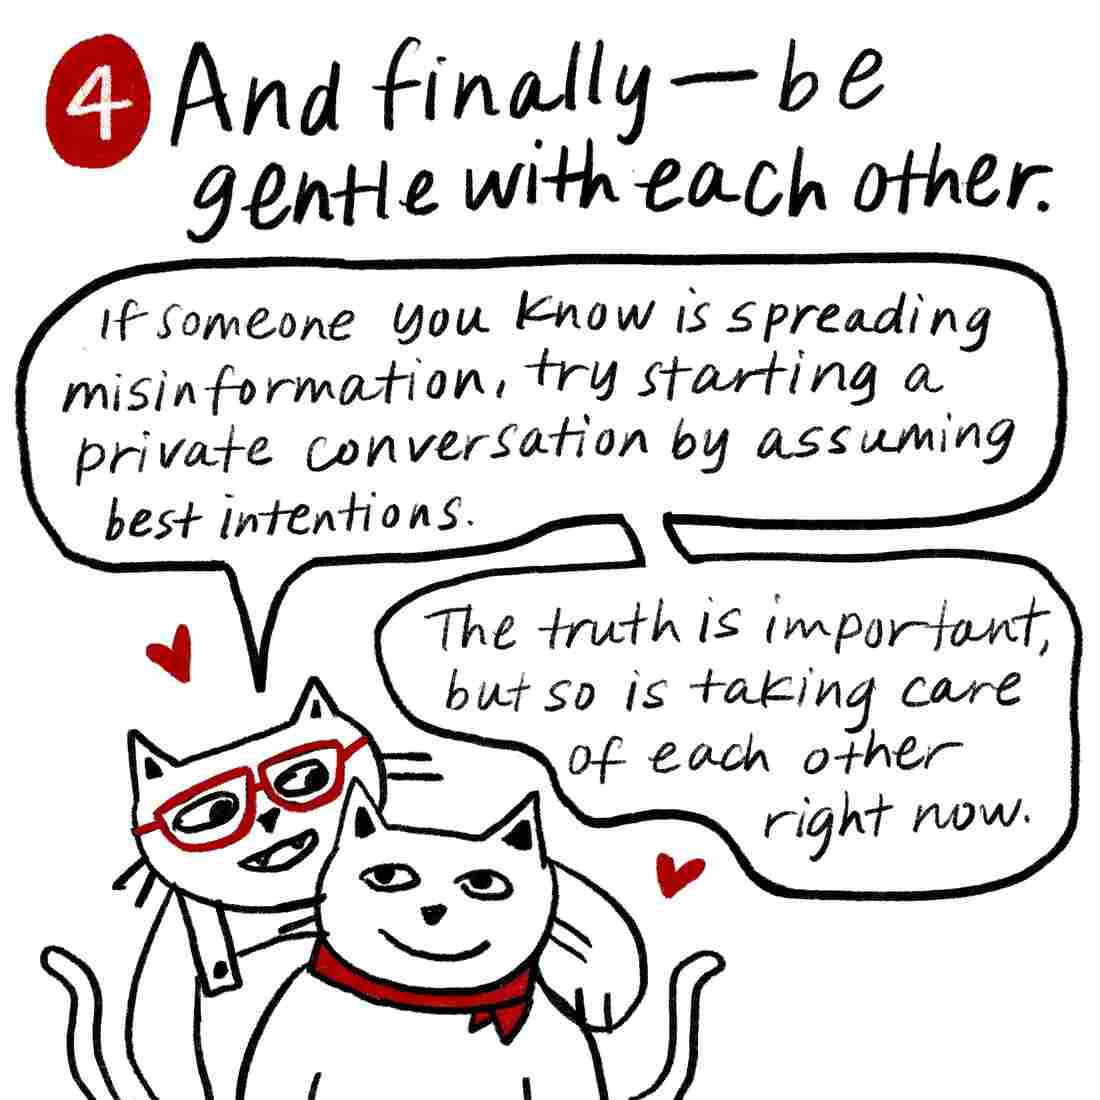 Tip 4: And finally, be gentle with each other. If someone you know is spreading misinformation, try starting a private conversation by assuming best interests. The truth is important, but so is taking care of each other right now. Glasses Cat and Bandanna Cat hug each other.